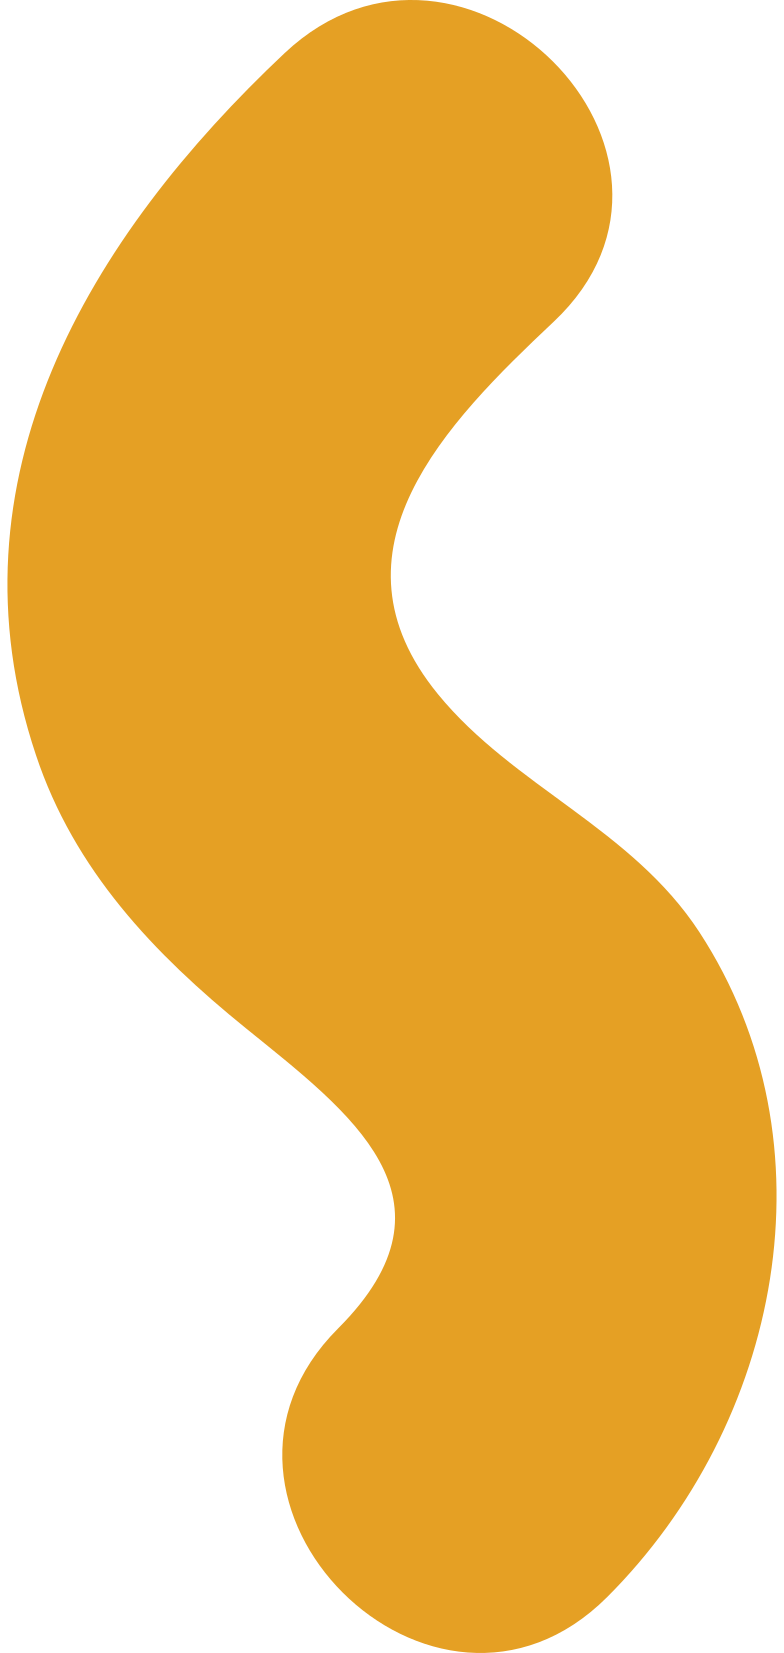 worm Clipart illustration in PNG, SVG